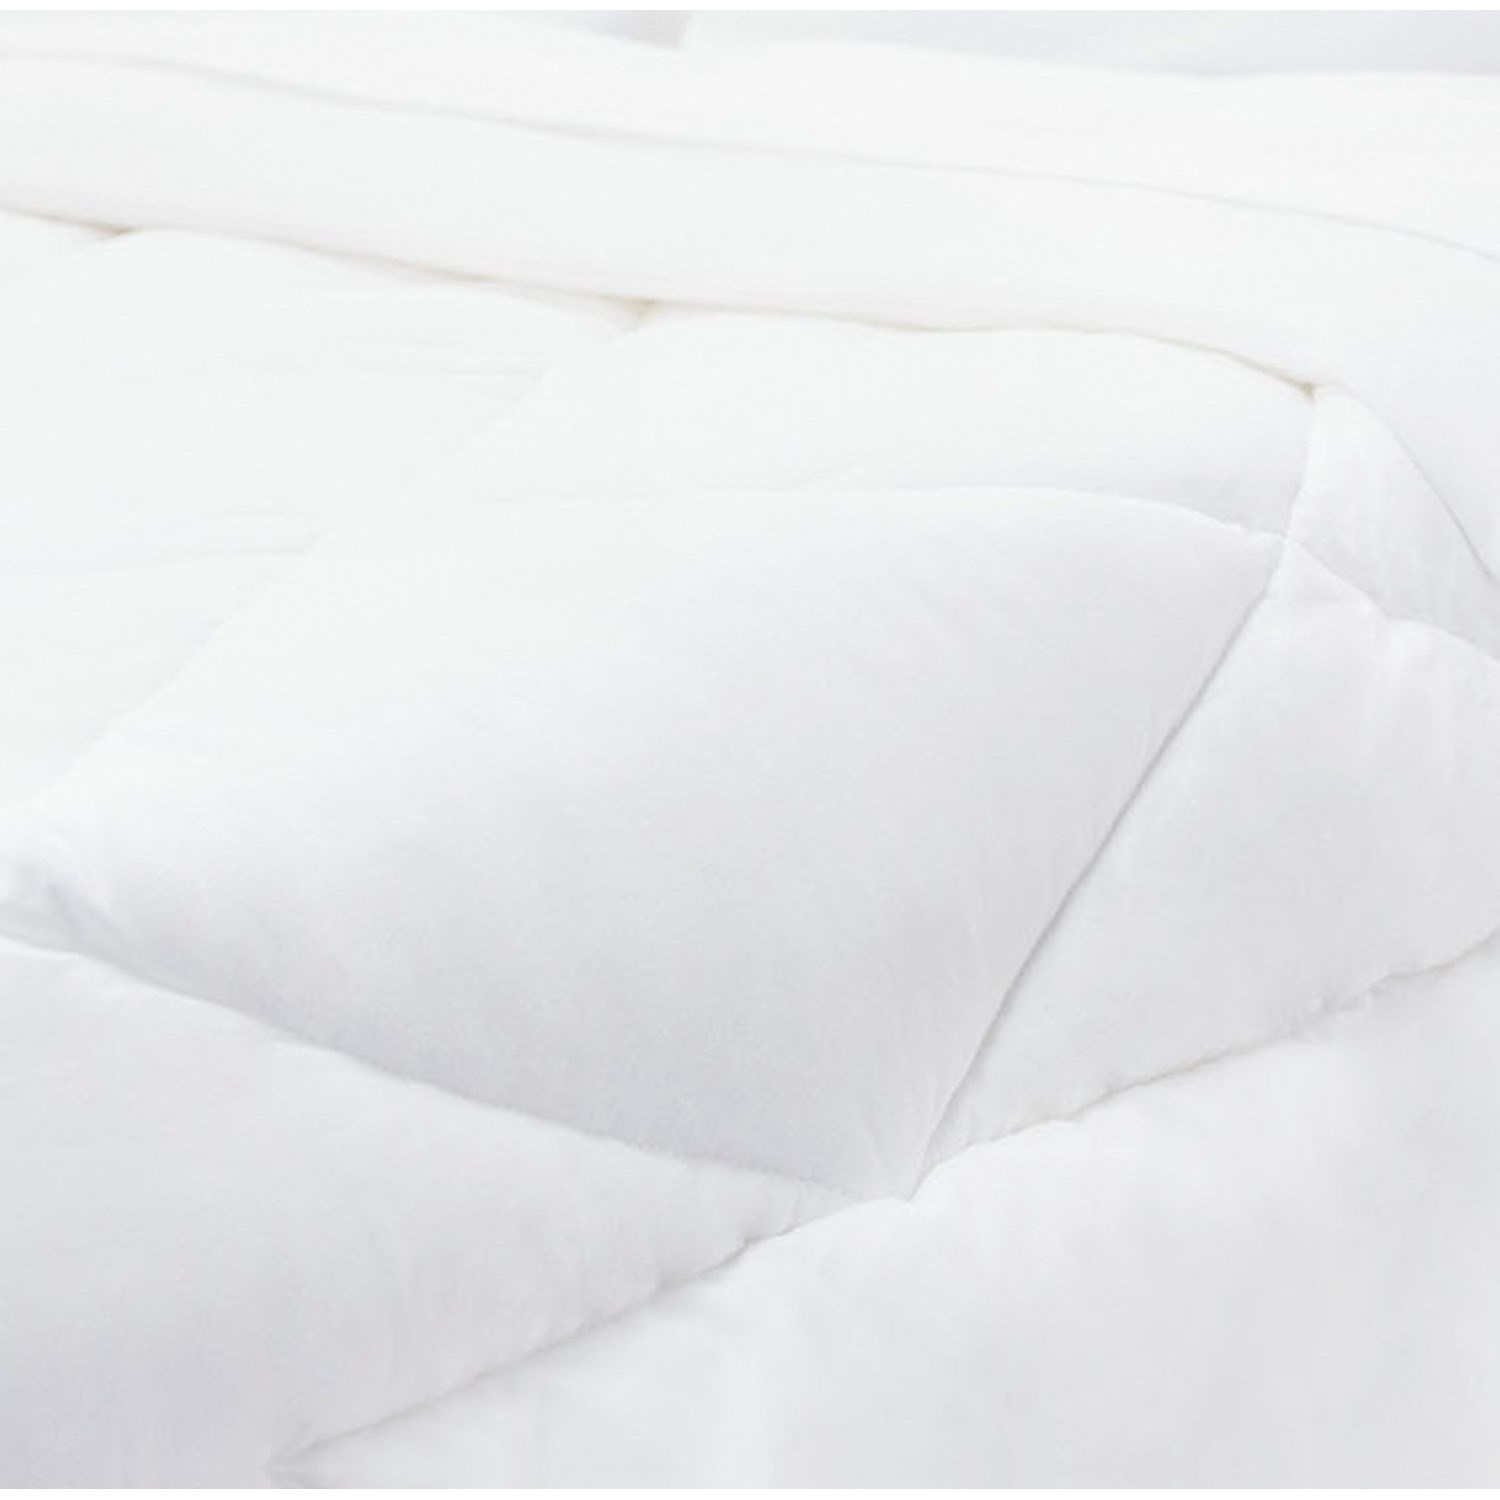 Malouf Down Alternative Queen Down Alternative Comforter  - Item Number: MA28QQDACO